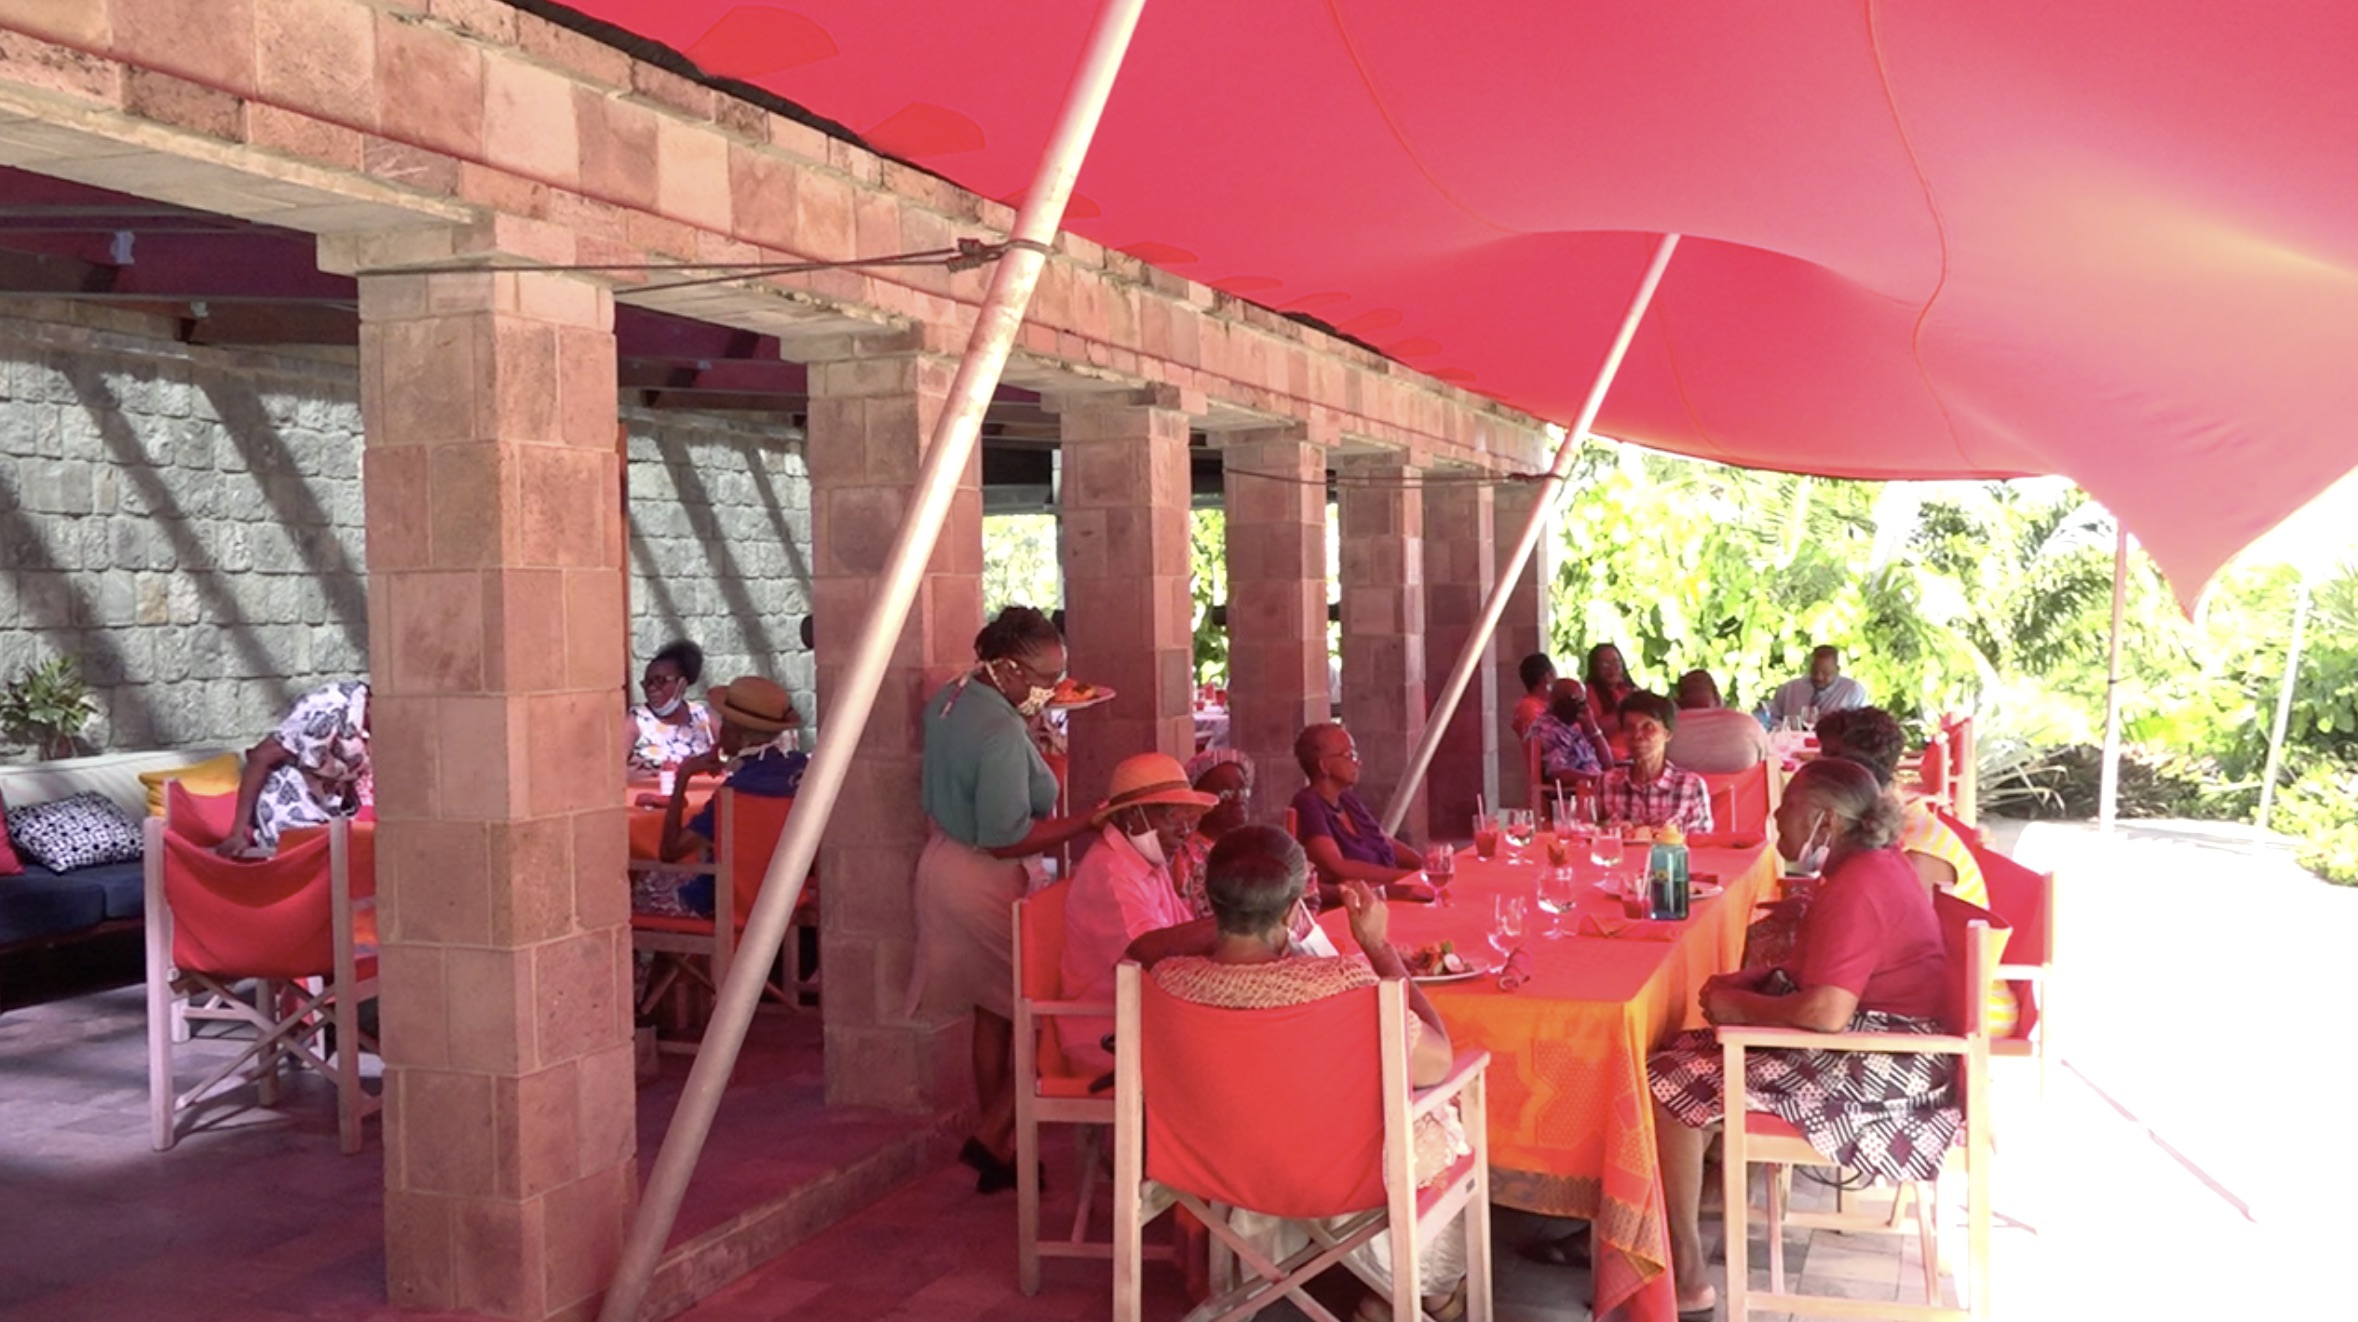 Seniors from the Hanley's Road community at an annual Christmas luncheon at the Golden Rock Inn on December 01, 2020, sponsored by the Empire Sports Club and the Ministry of Social Development